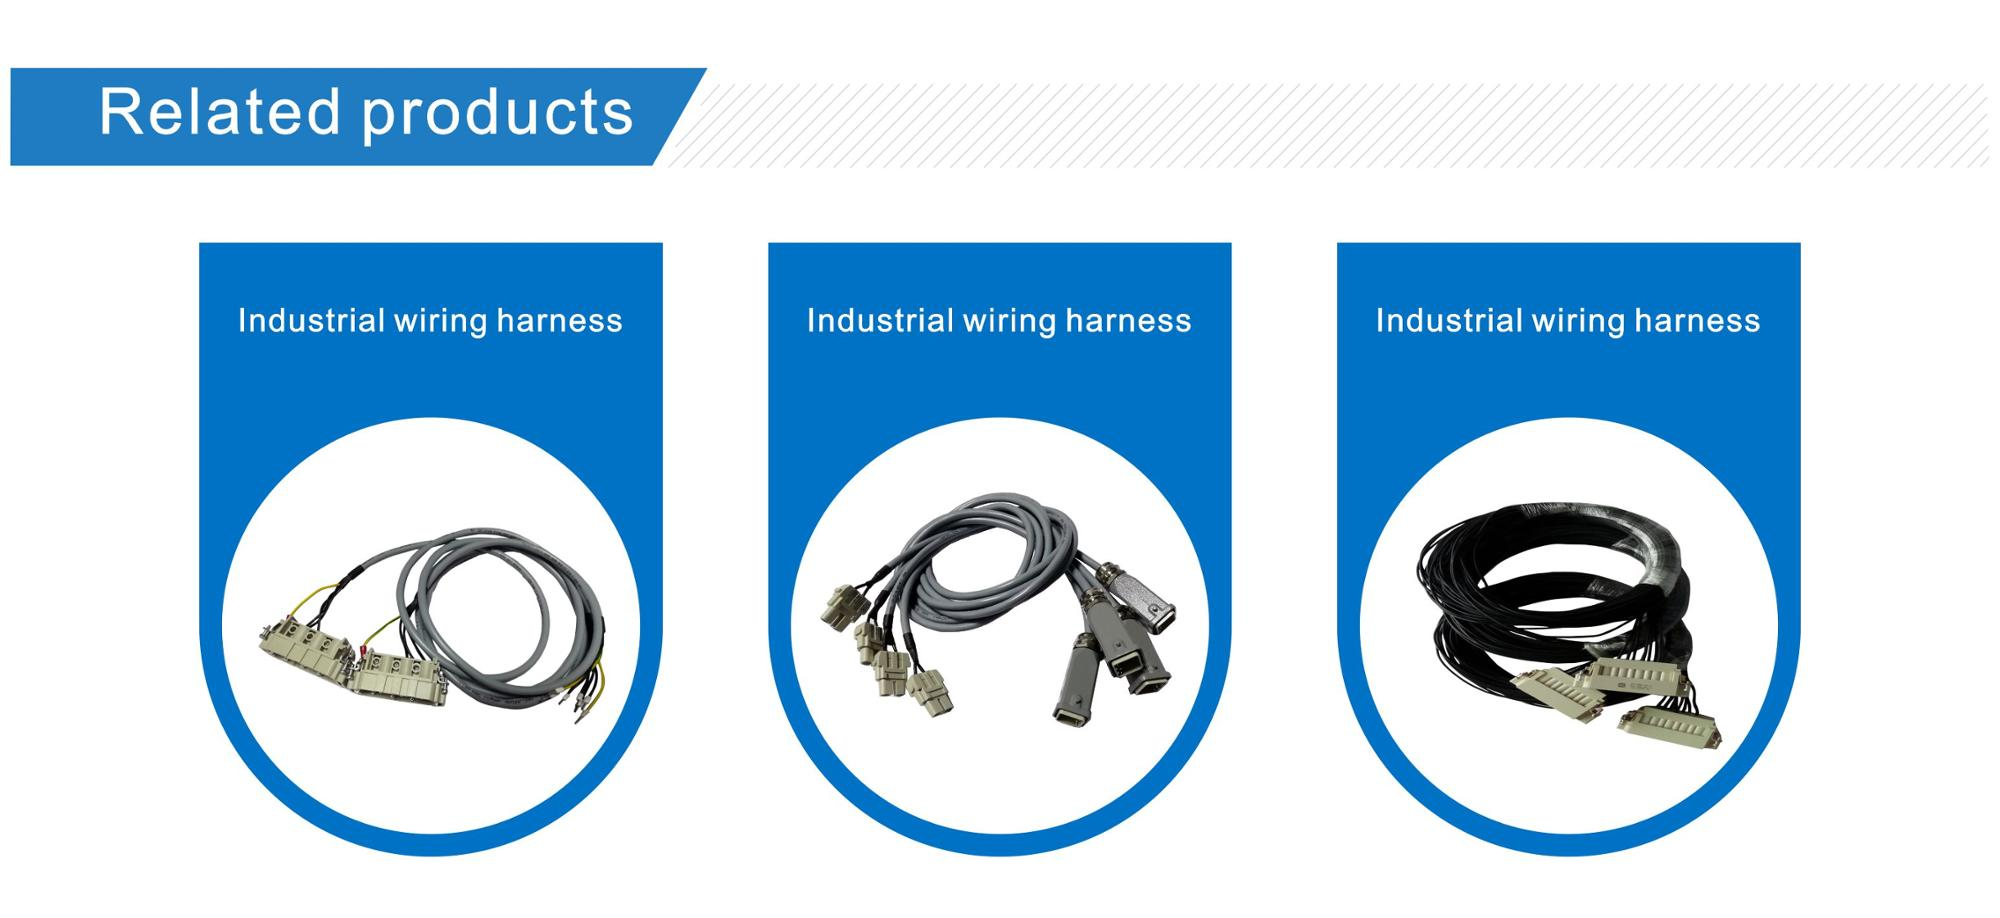 hight resolution of harting heavy duty connectors 19300100527 industrial wire harness for industrial robot